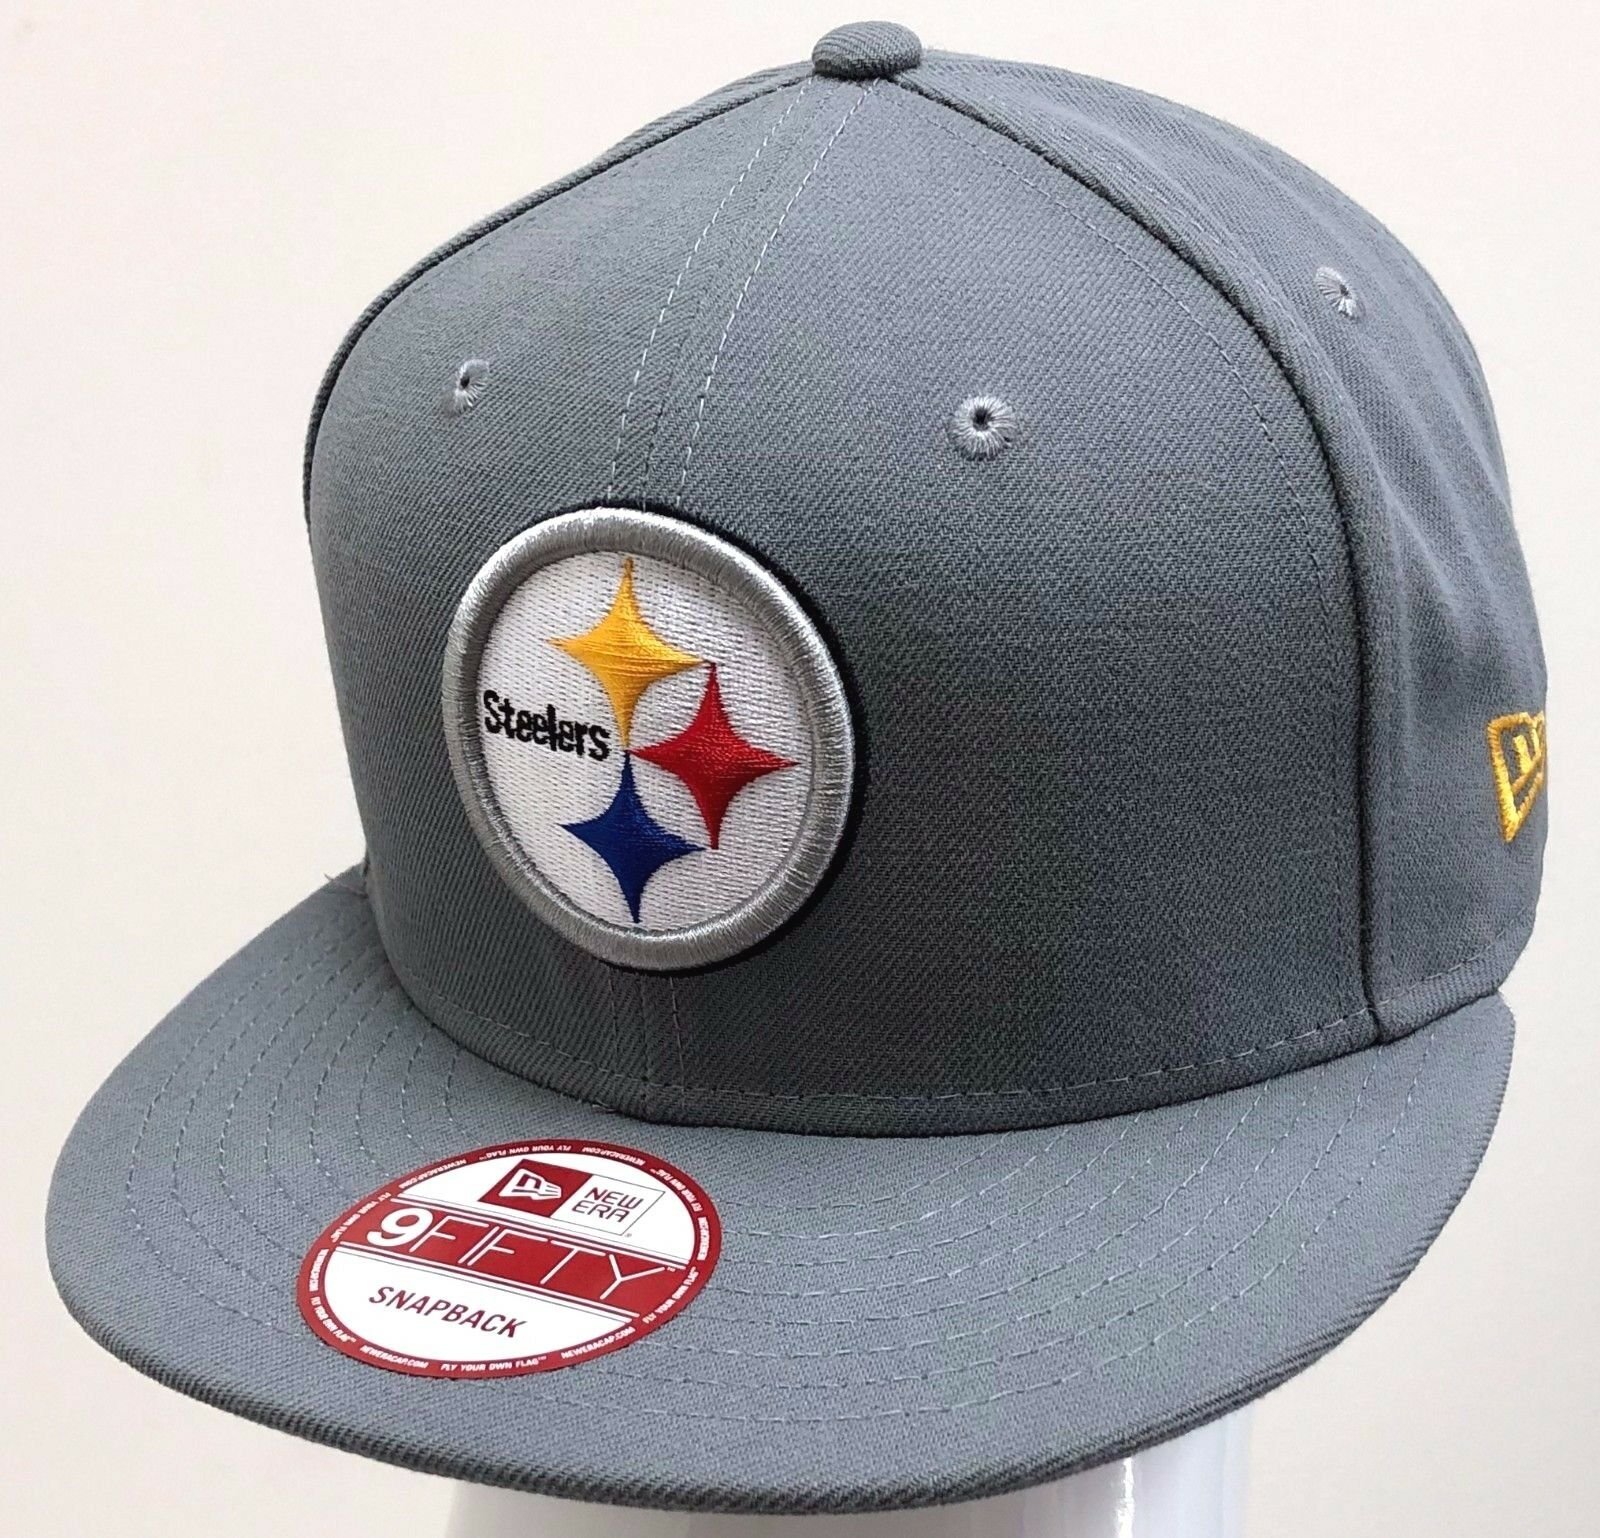 b560f4da1 ... spain new era 9fifty pittsburgh snapback custom nfl pittsburgh 9fifty  steelers grey yellow white ff2ae4 c349e